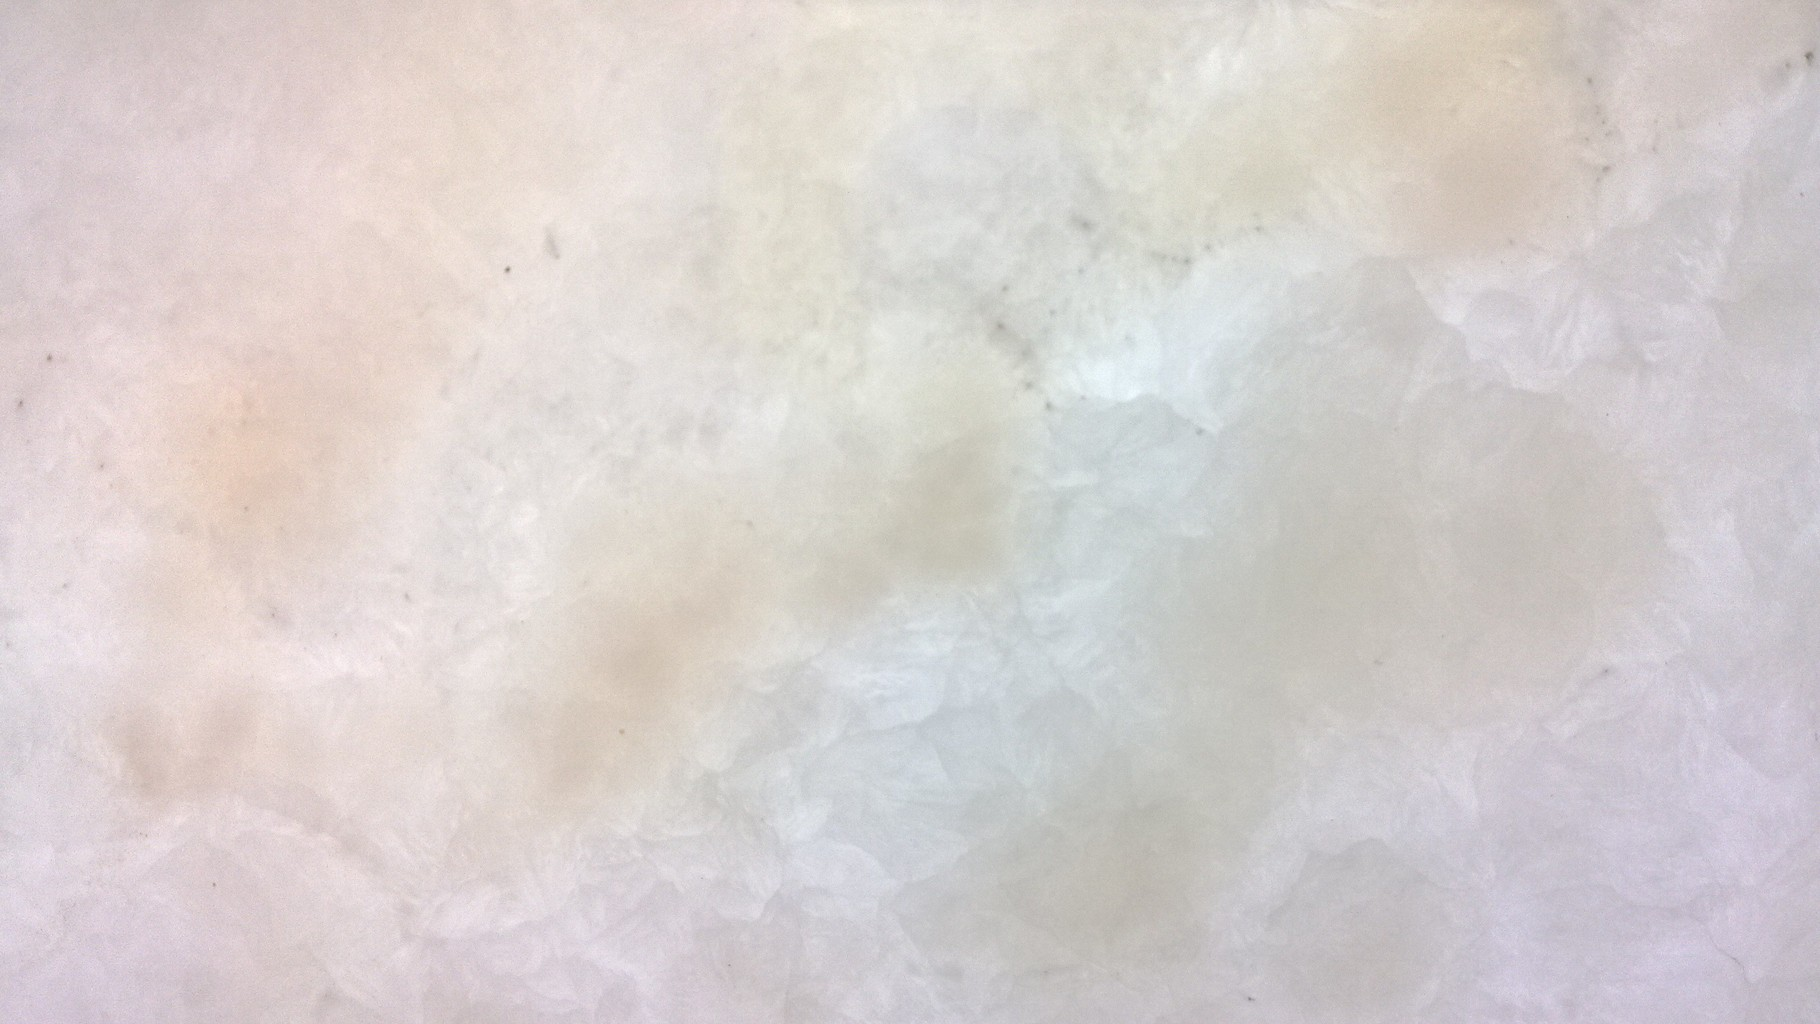 white onyx slabs, onyx slab, onyx slabs, onyx slabs price, onyx slabs for sale, onyx slabs countertops, red onyx slabs, onyx slab wall, onyx slabs dining table